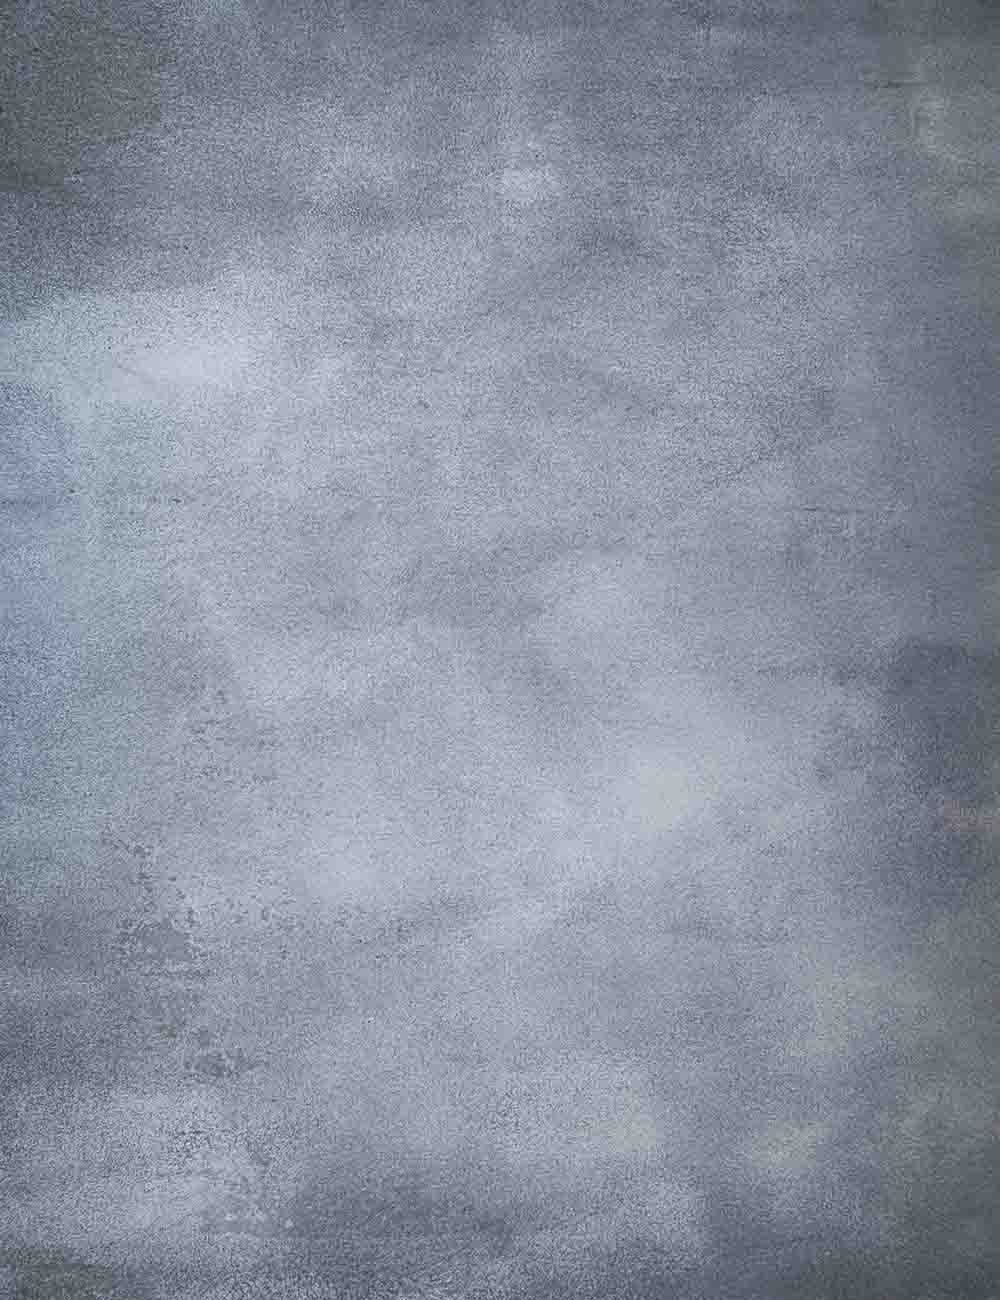 Dark Gray Abstract Printed Old Master Backdrop For Studio Photography - Shop Backdrop